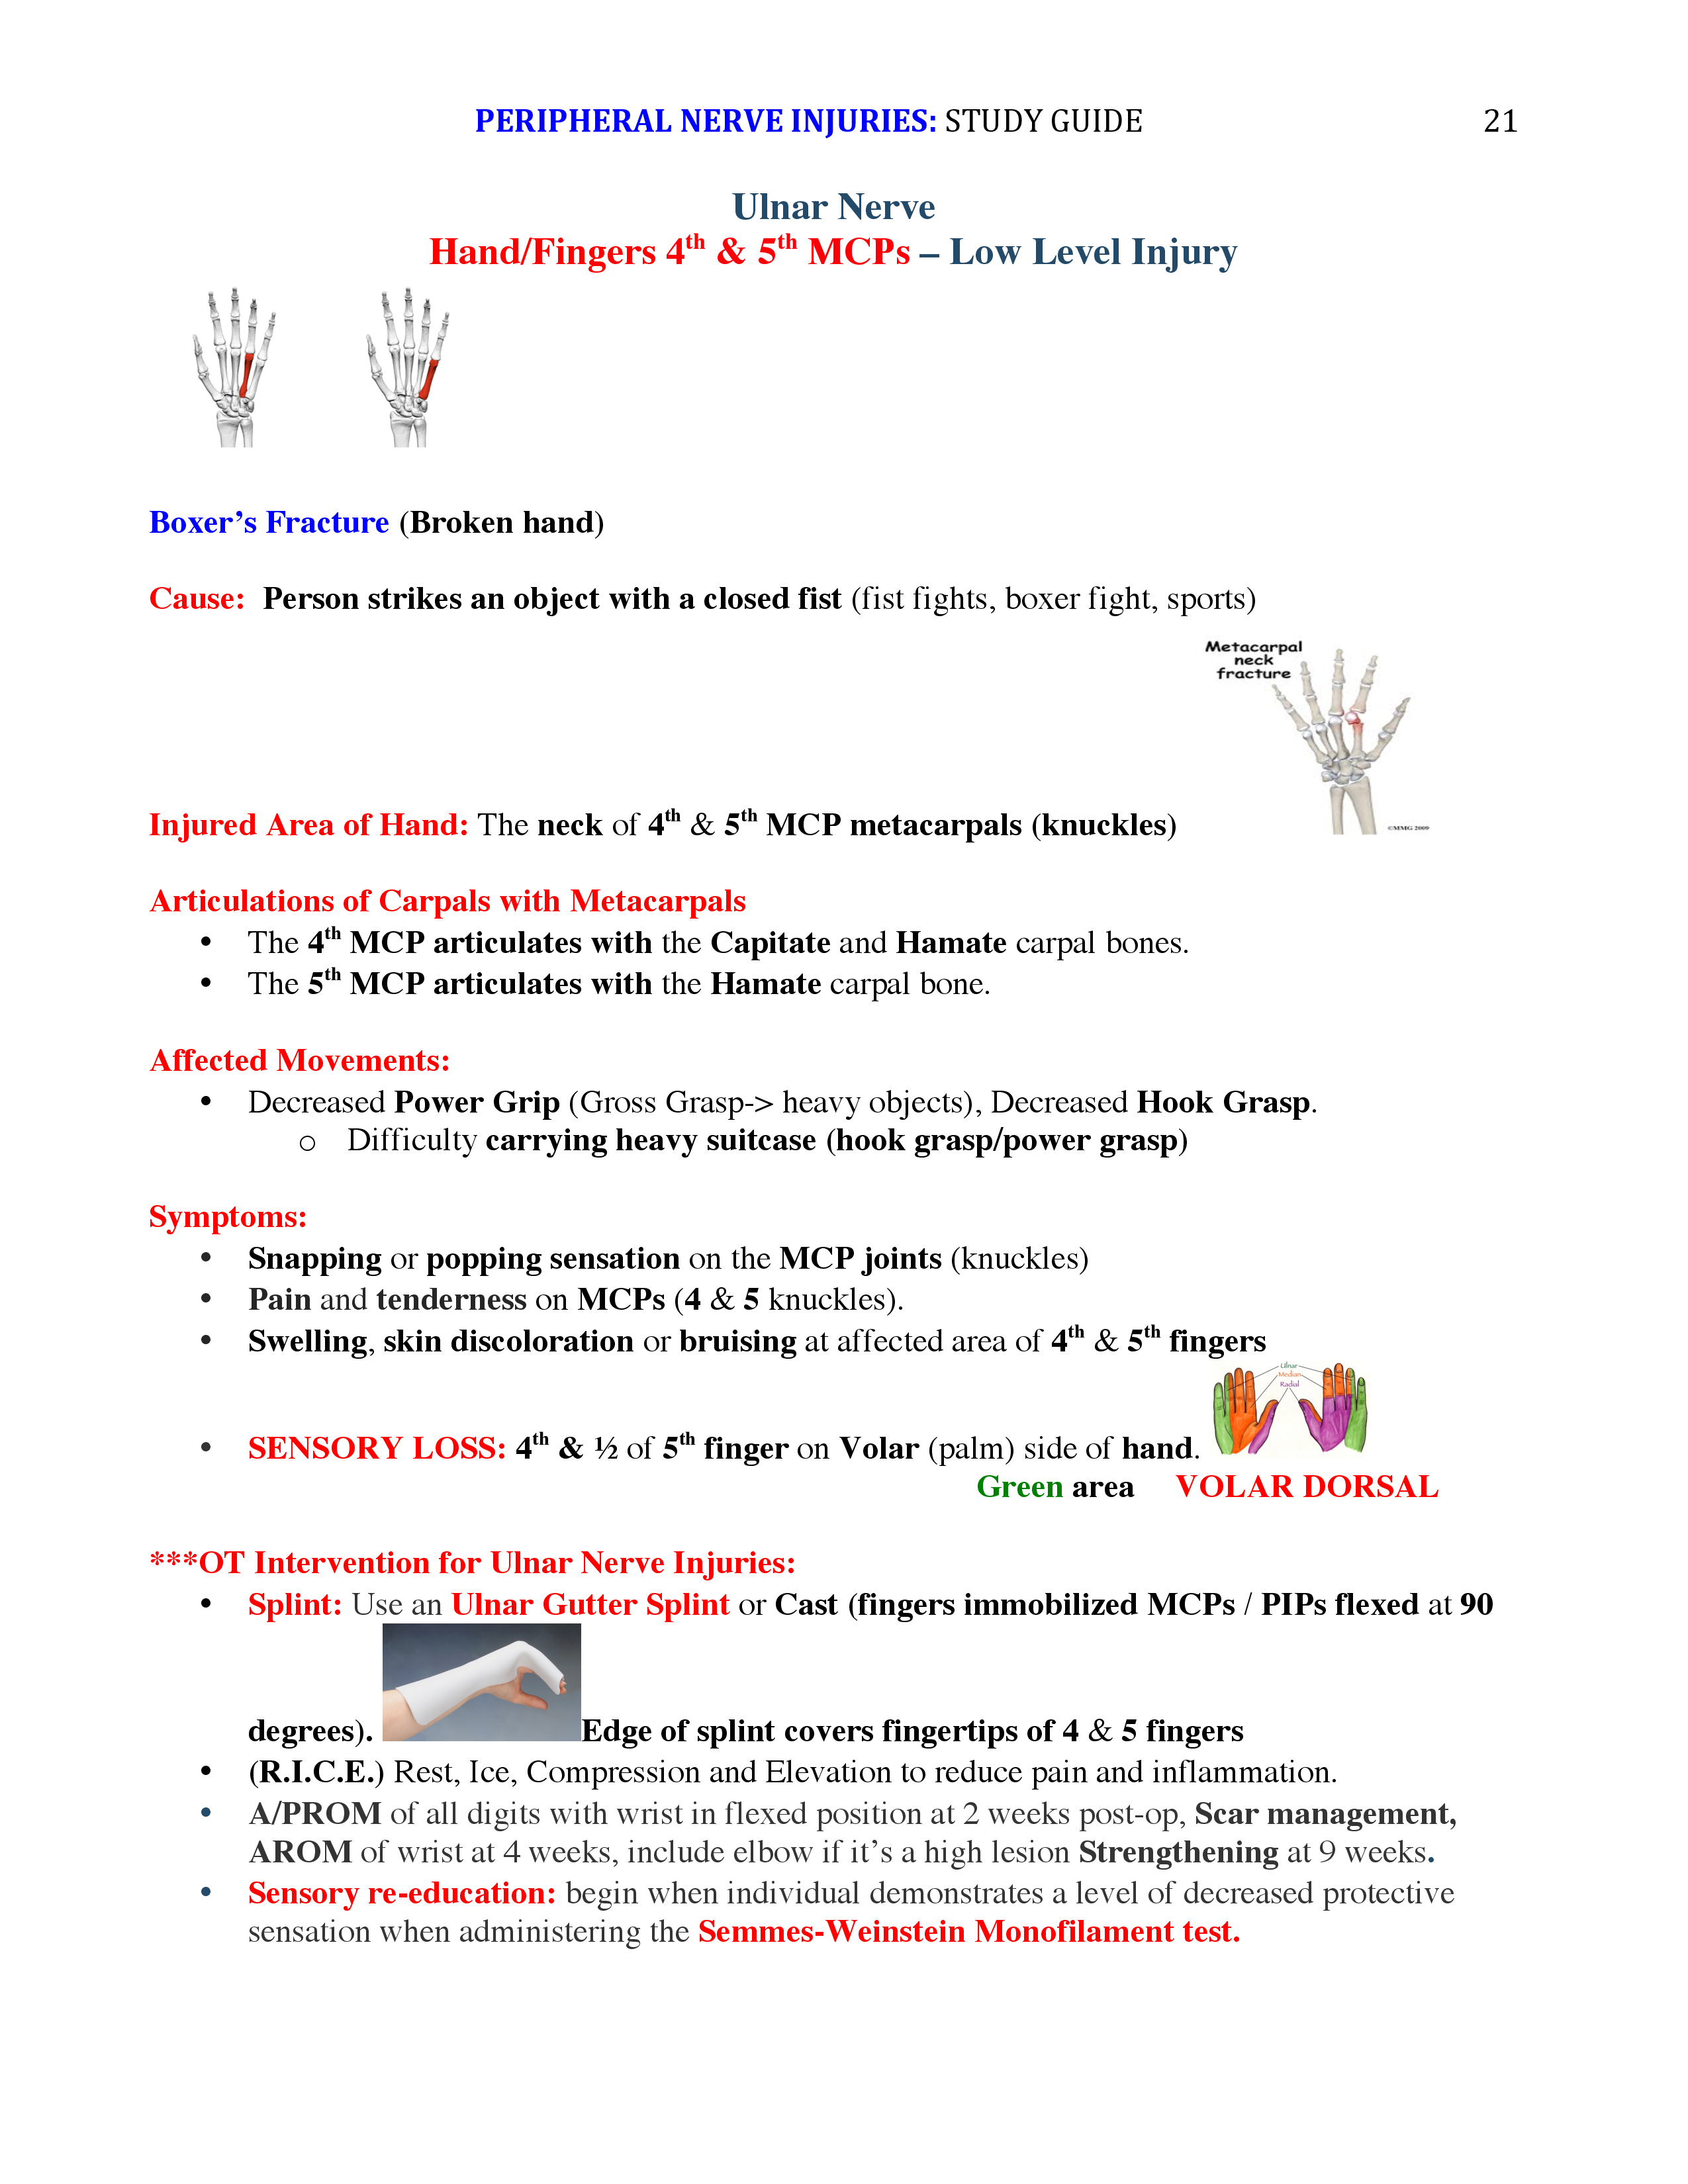 Peripheral Nerve Injuries Study Guide page 21